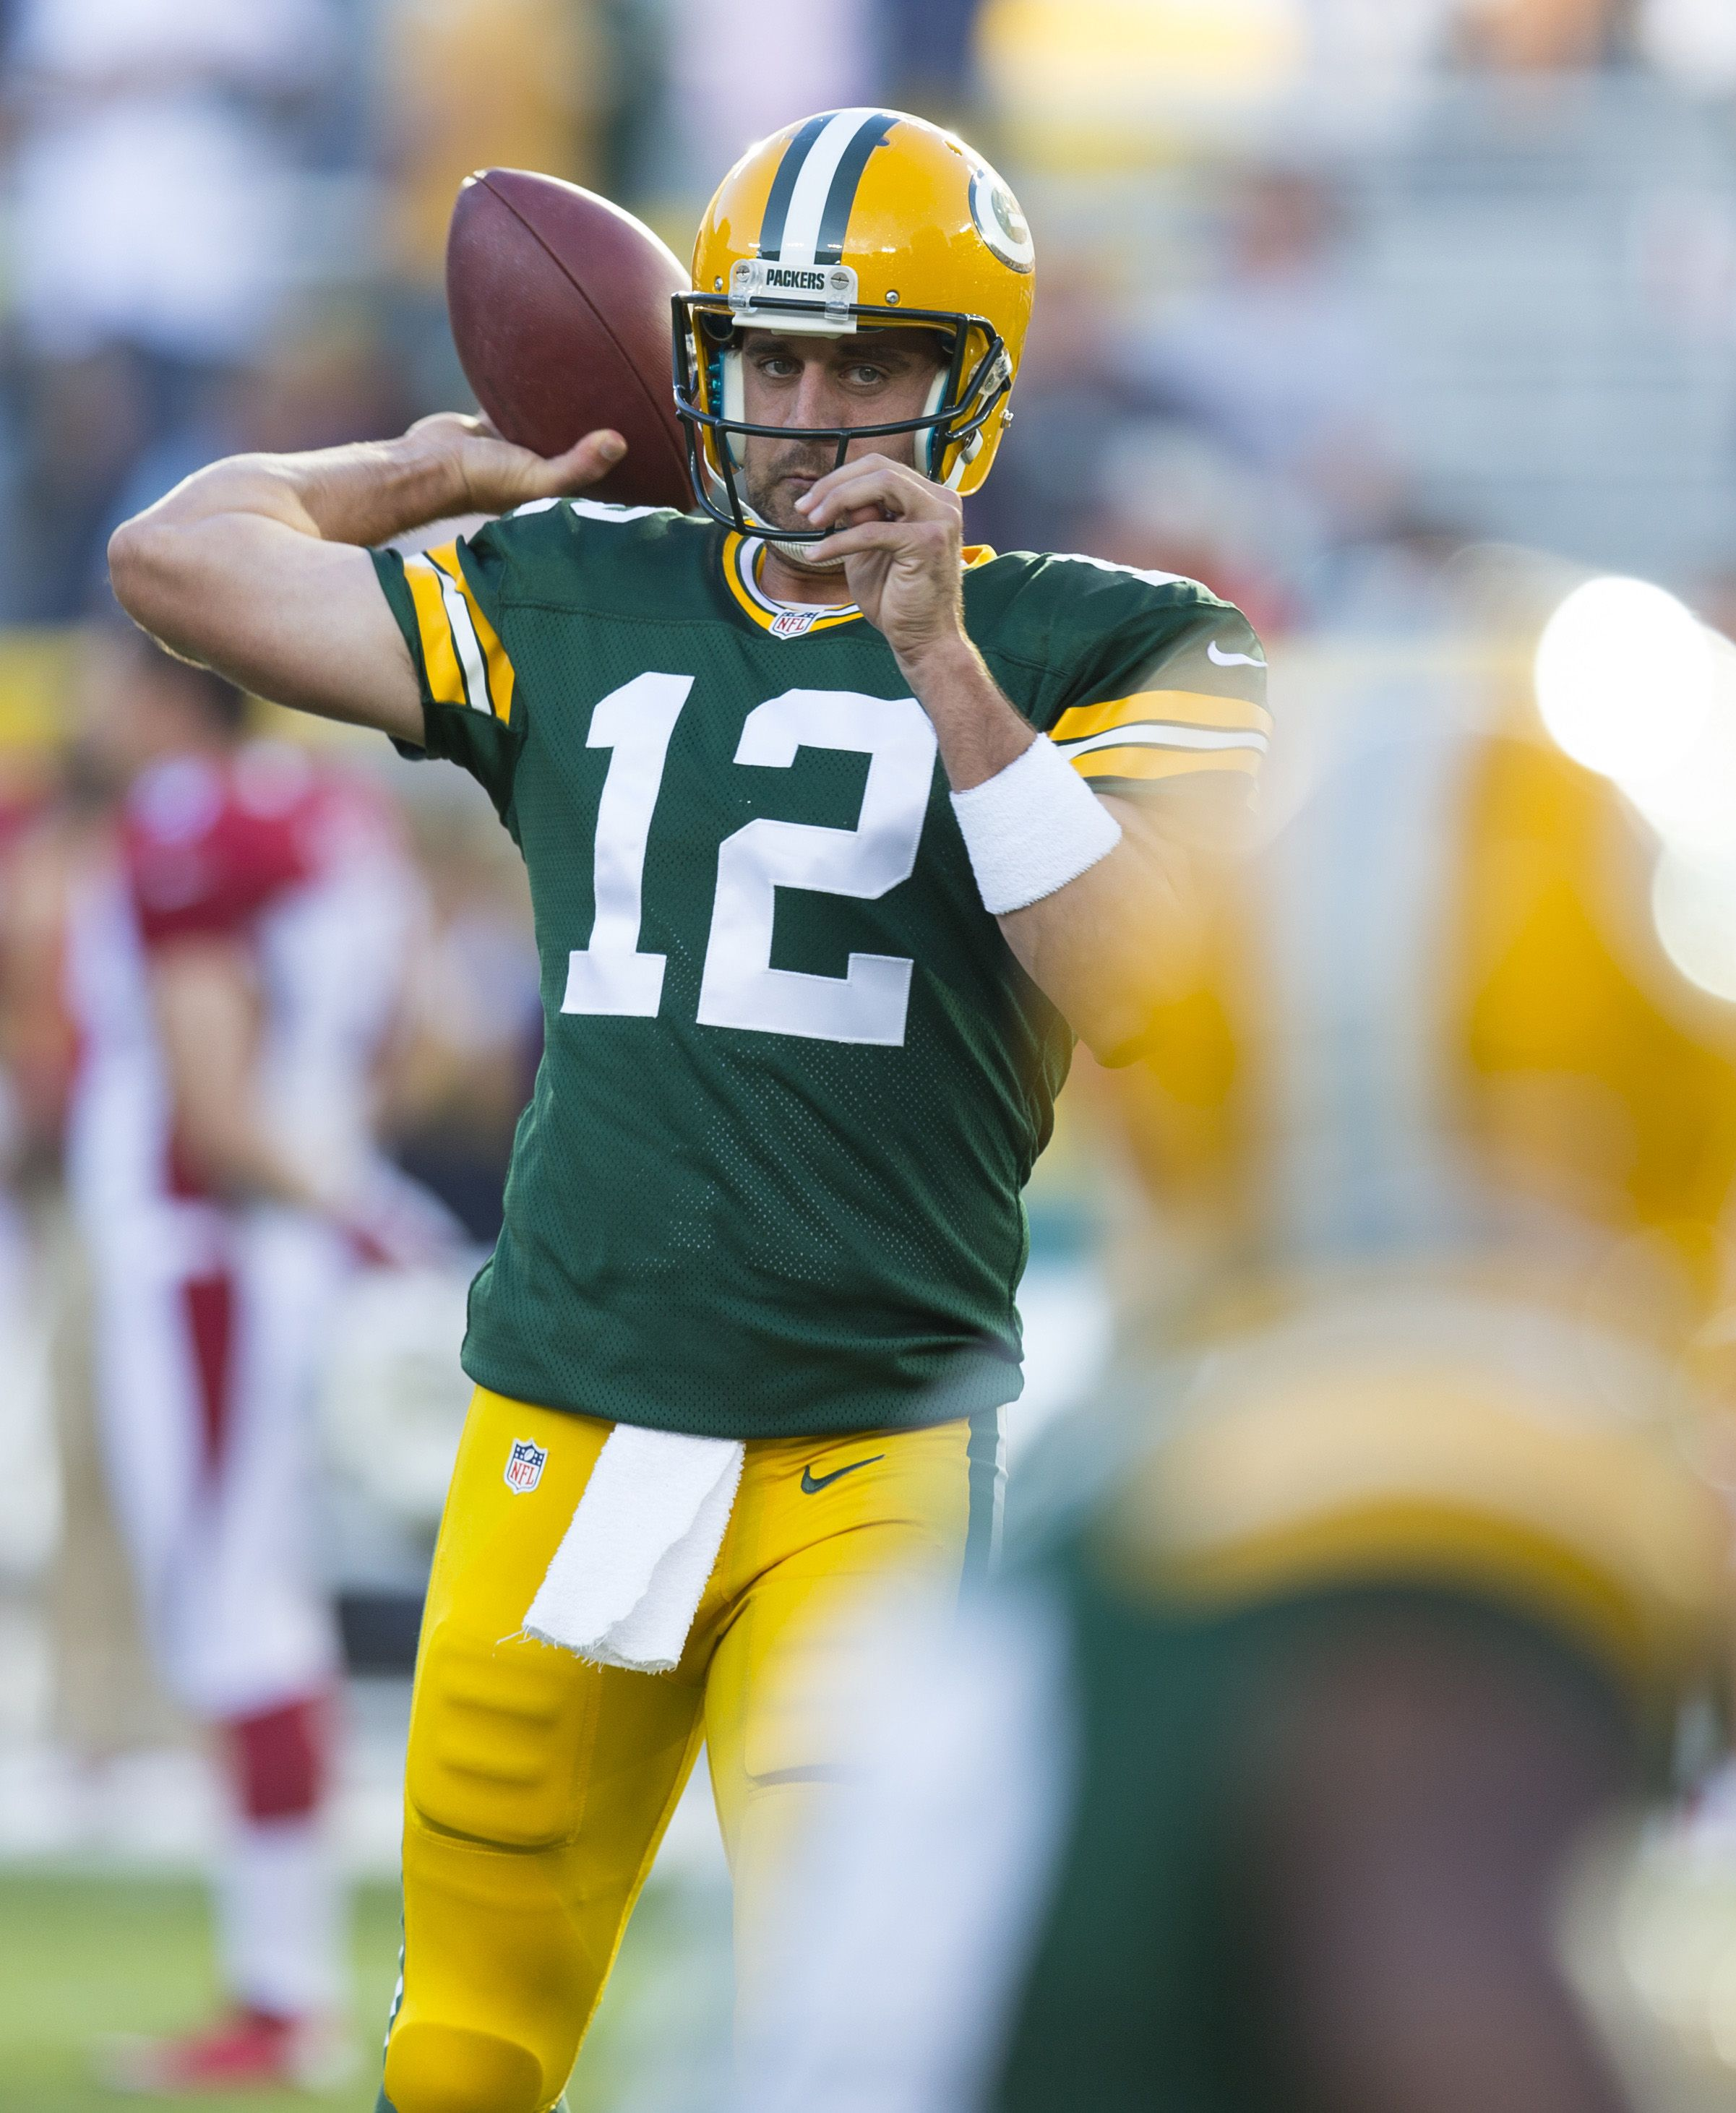 Green Bay Packers Quarterback Aaron Rodgers Throws A Pass During Warmups Prior To The Game Against The Arizona Cardinals At Arizona Cardinals Green Bay Packers